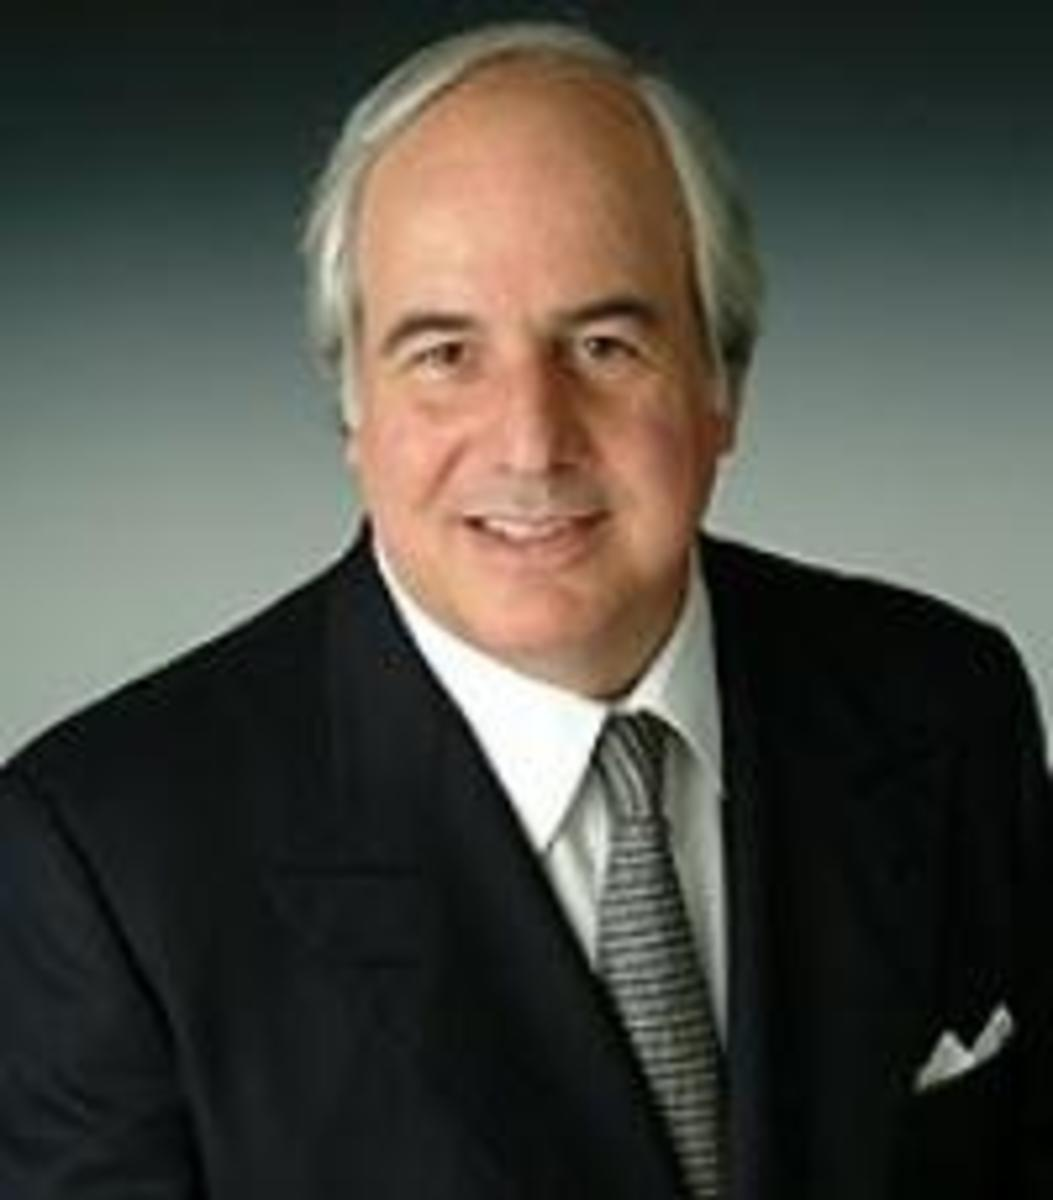 Frank Abagnale, The World's Youngest Bank Defrauder